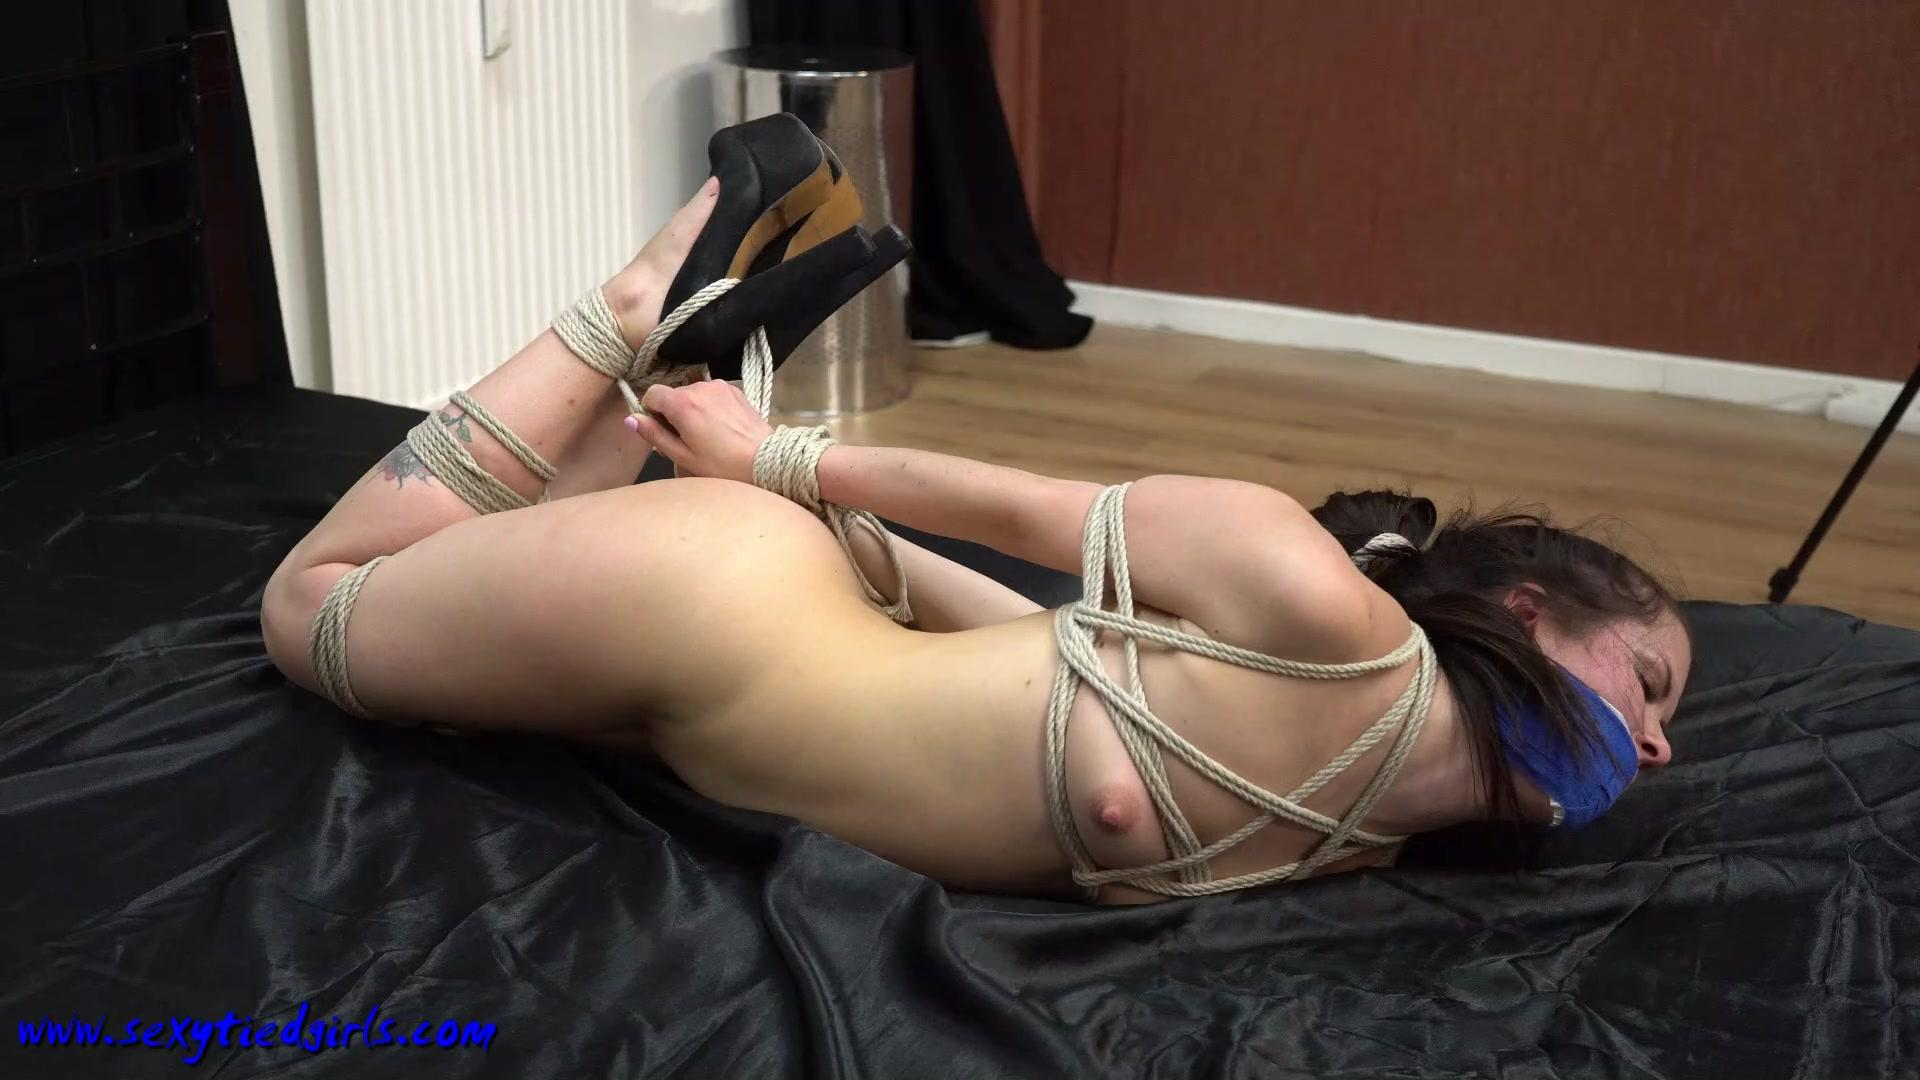 Watch busty party girl duped into bondage